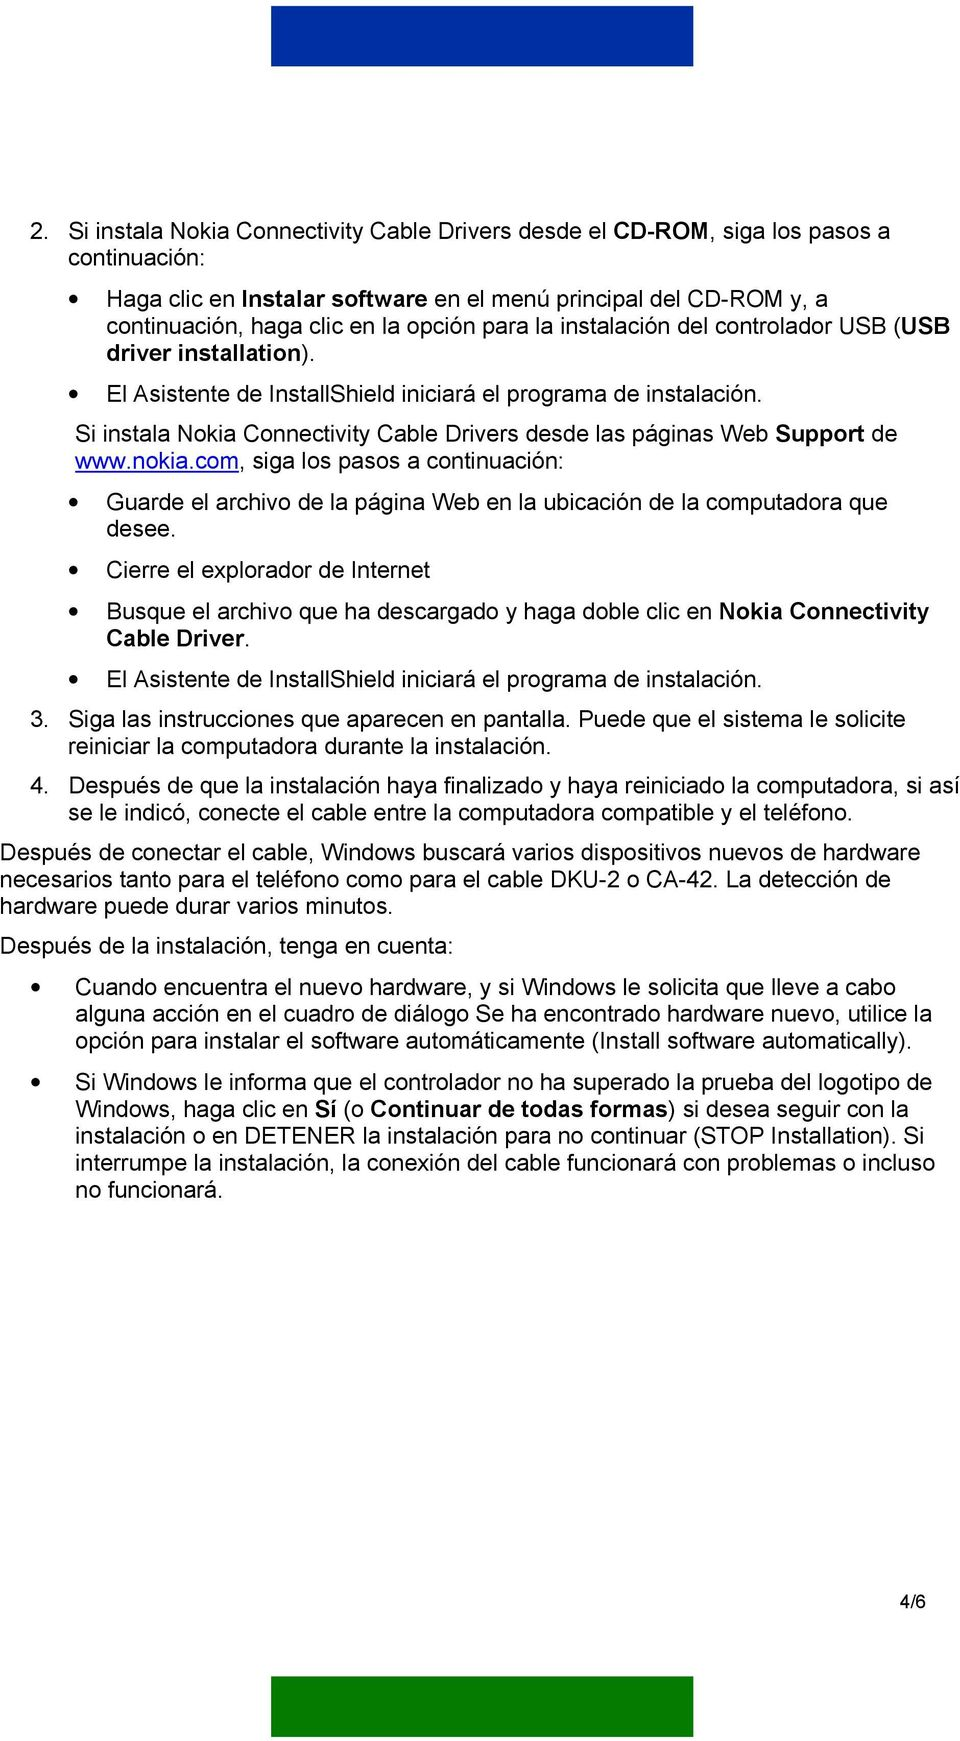 Si instala Nokia Connectivity Cable Drivers desde las páginas Web Support de www.nokia.